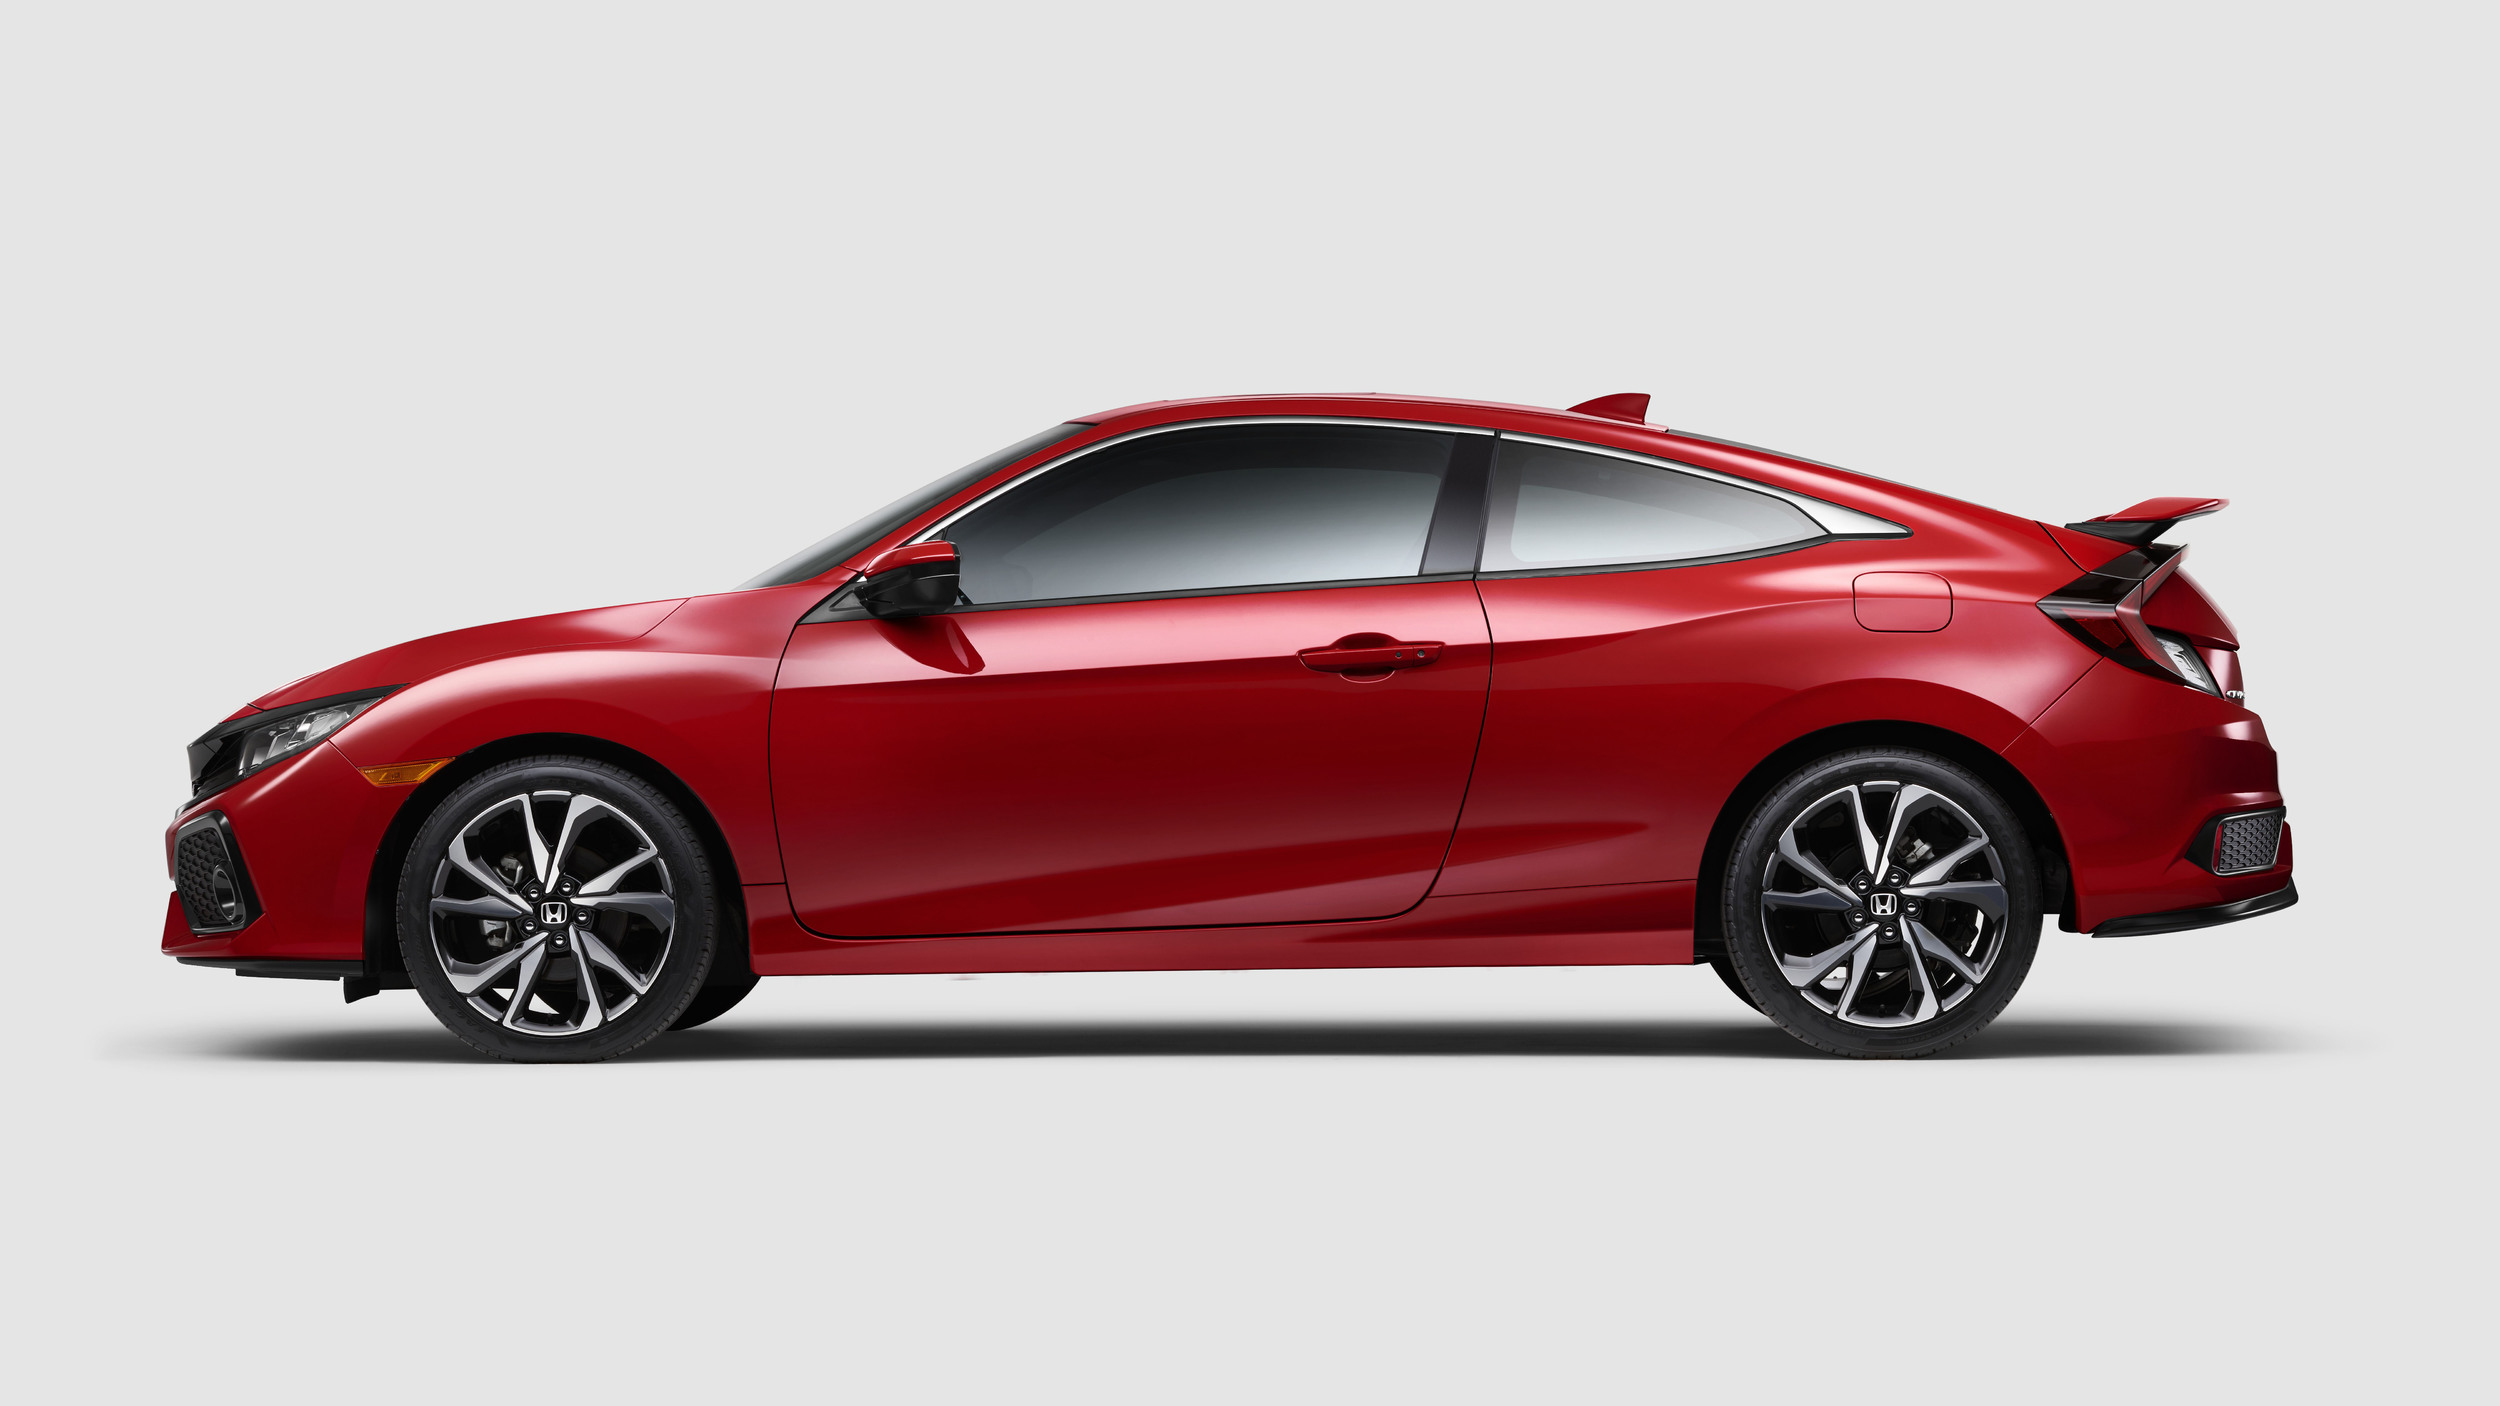 Honda Civic Si 2018 (8)